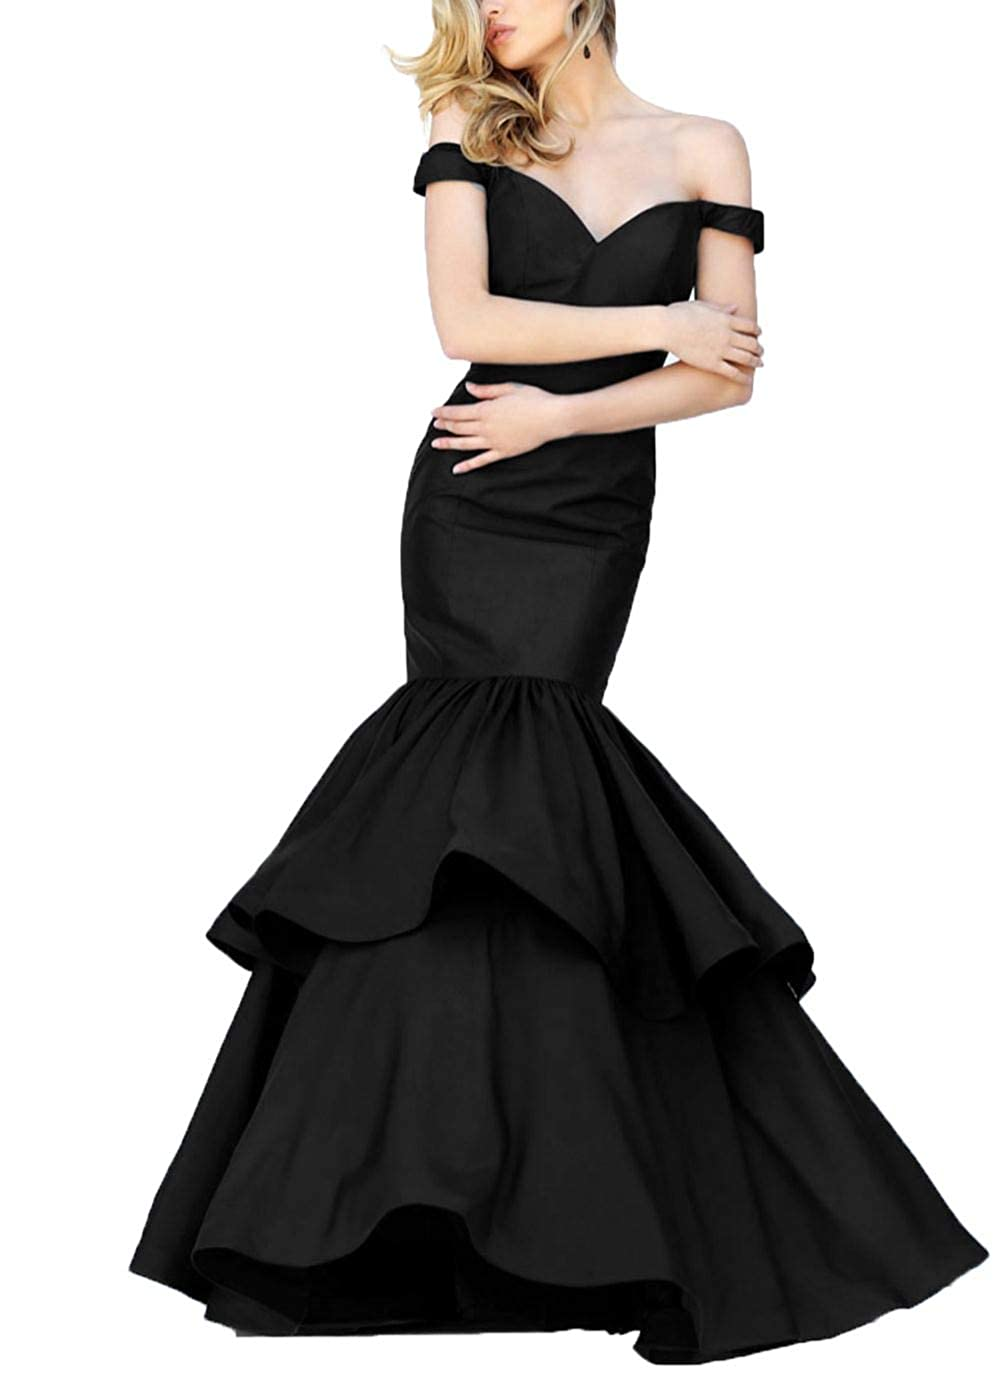 Black Yisha Bello Women's Off The Shoulder Mermaid Evening Formal Party Dress VNeck Ruffles Pro Dress